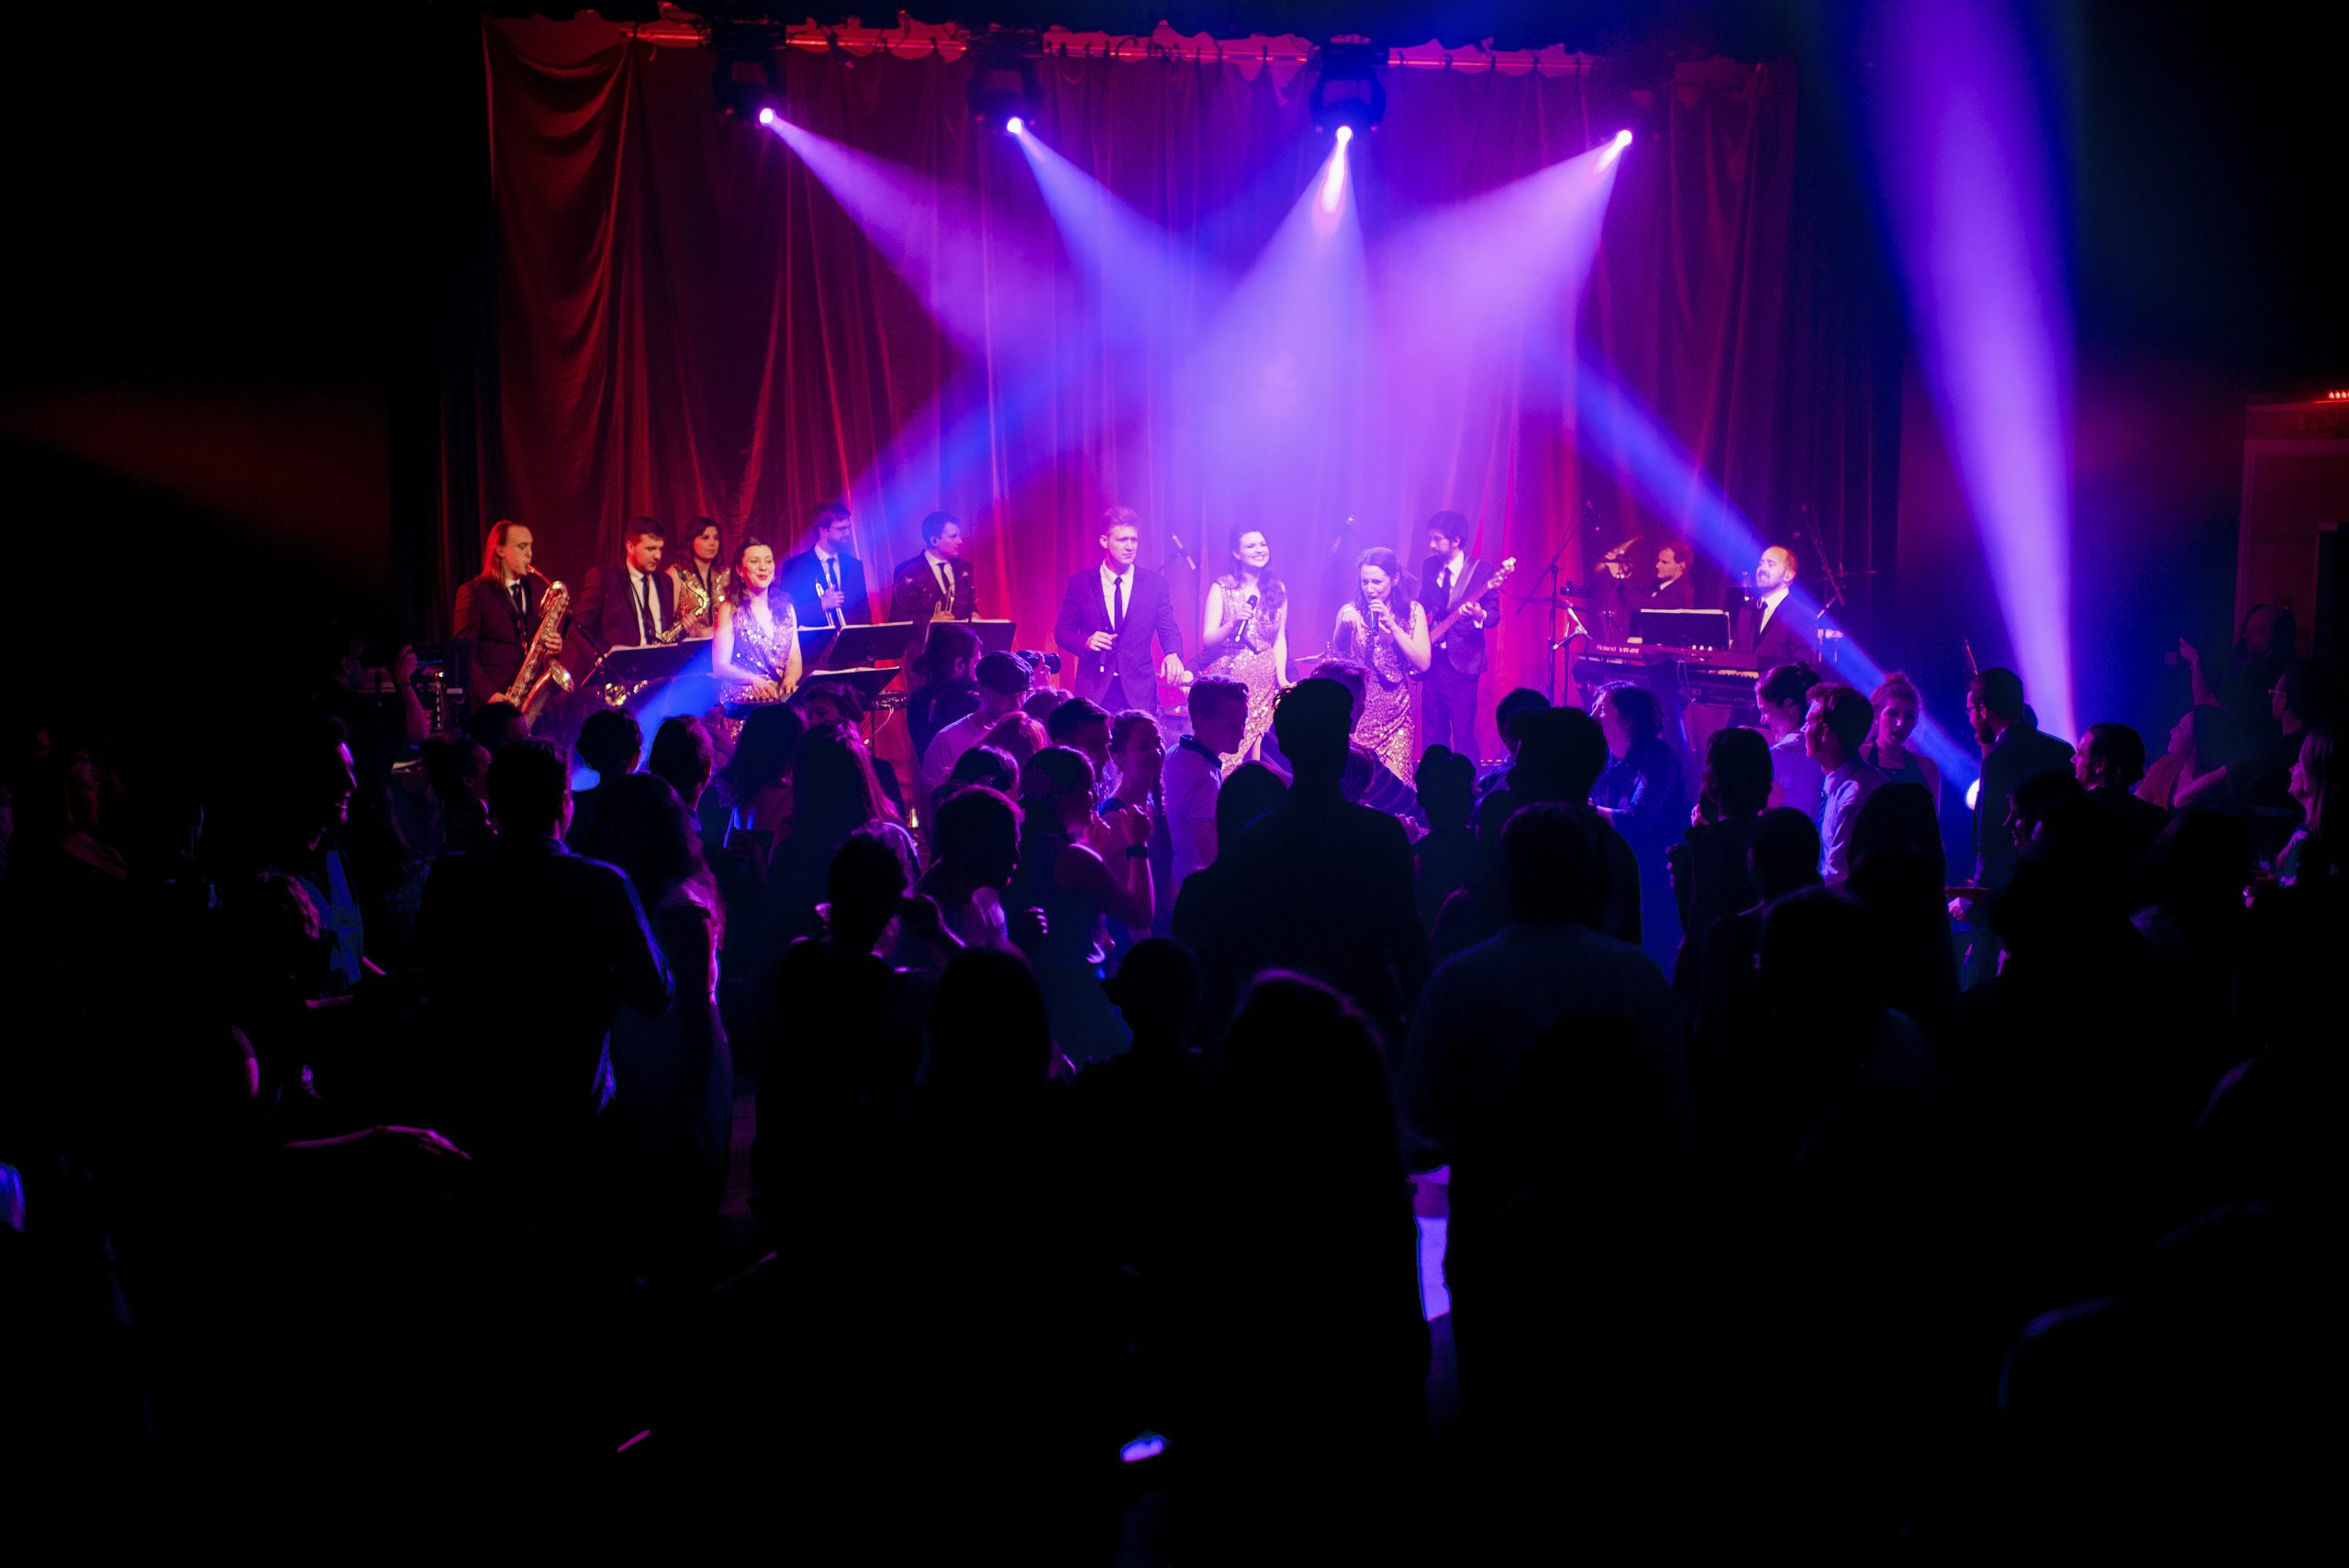 swing band on stage with pink lighting and huge crowd of guests